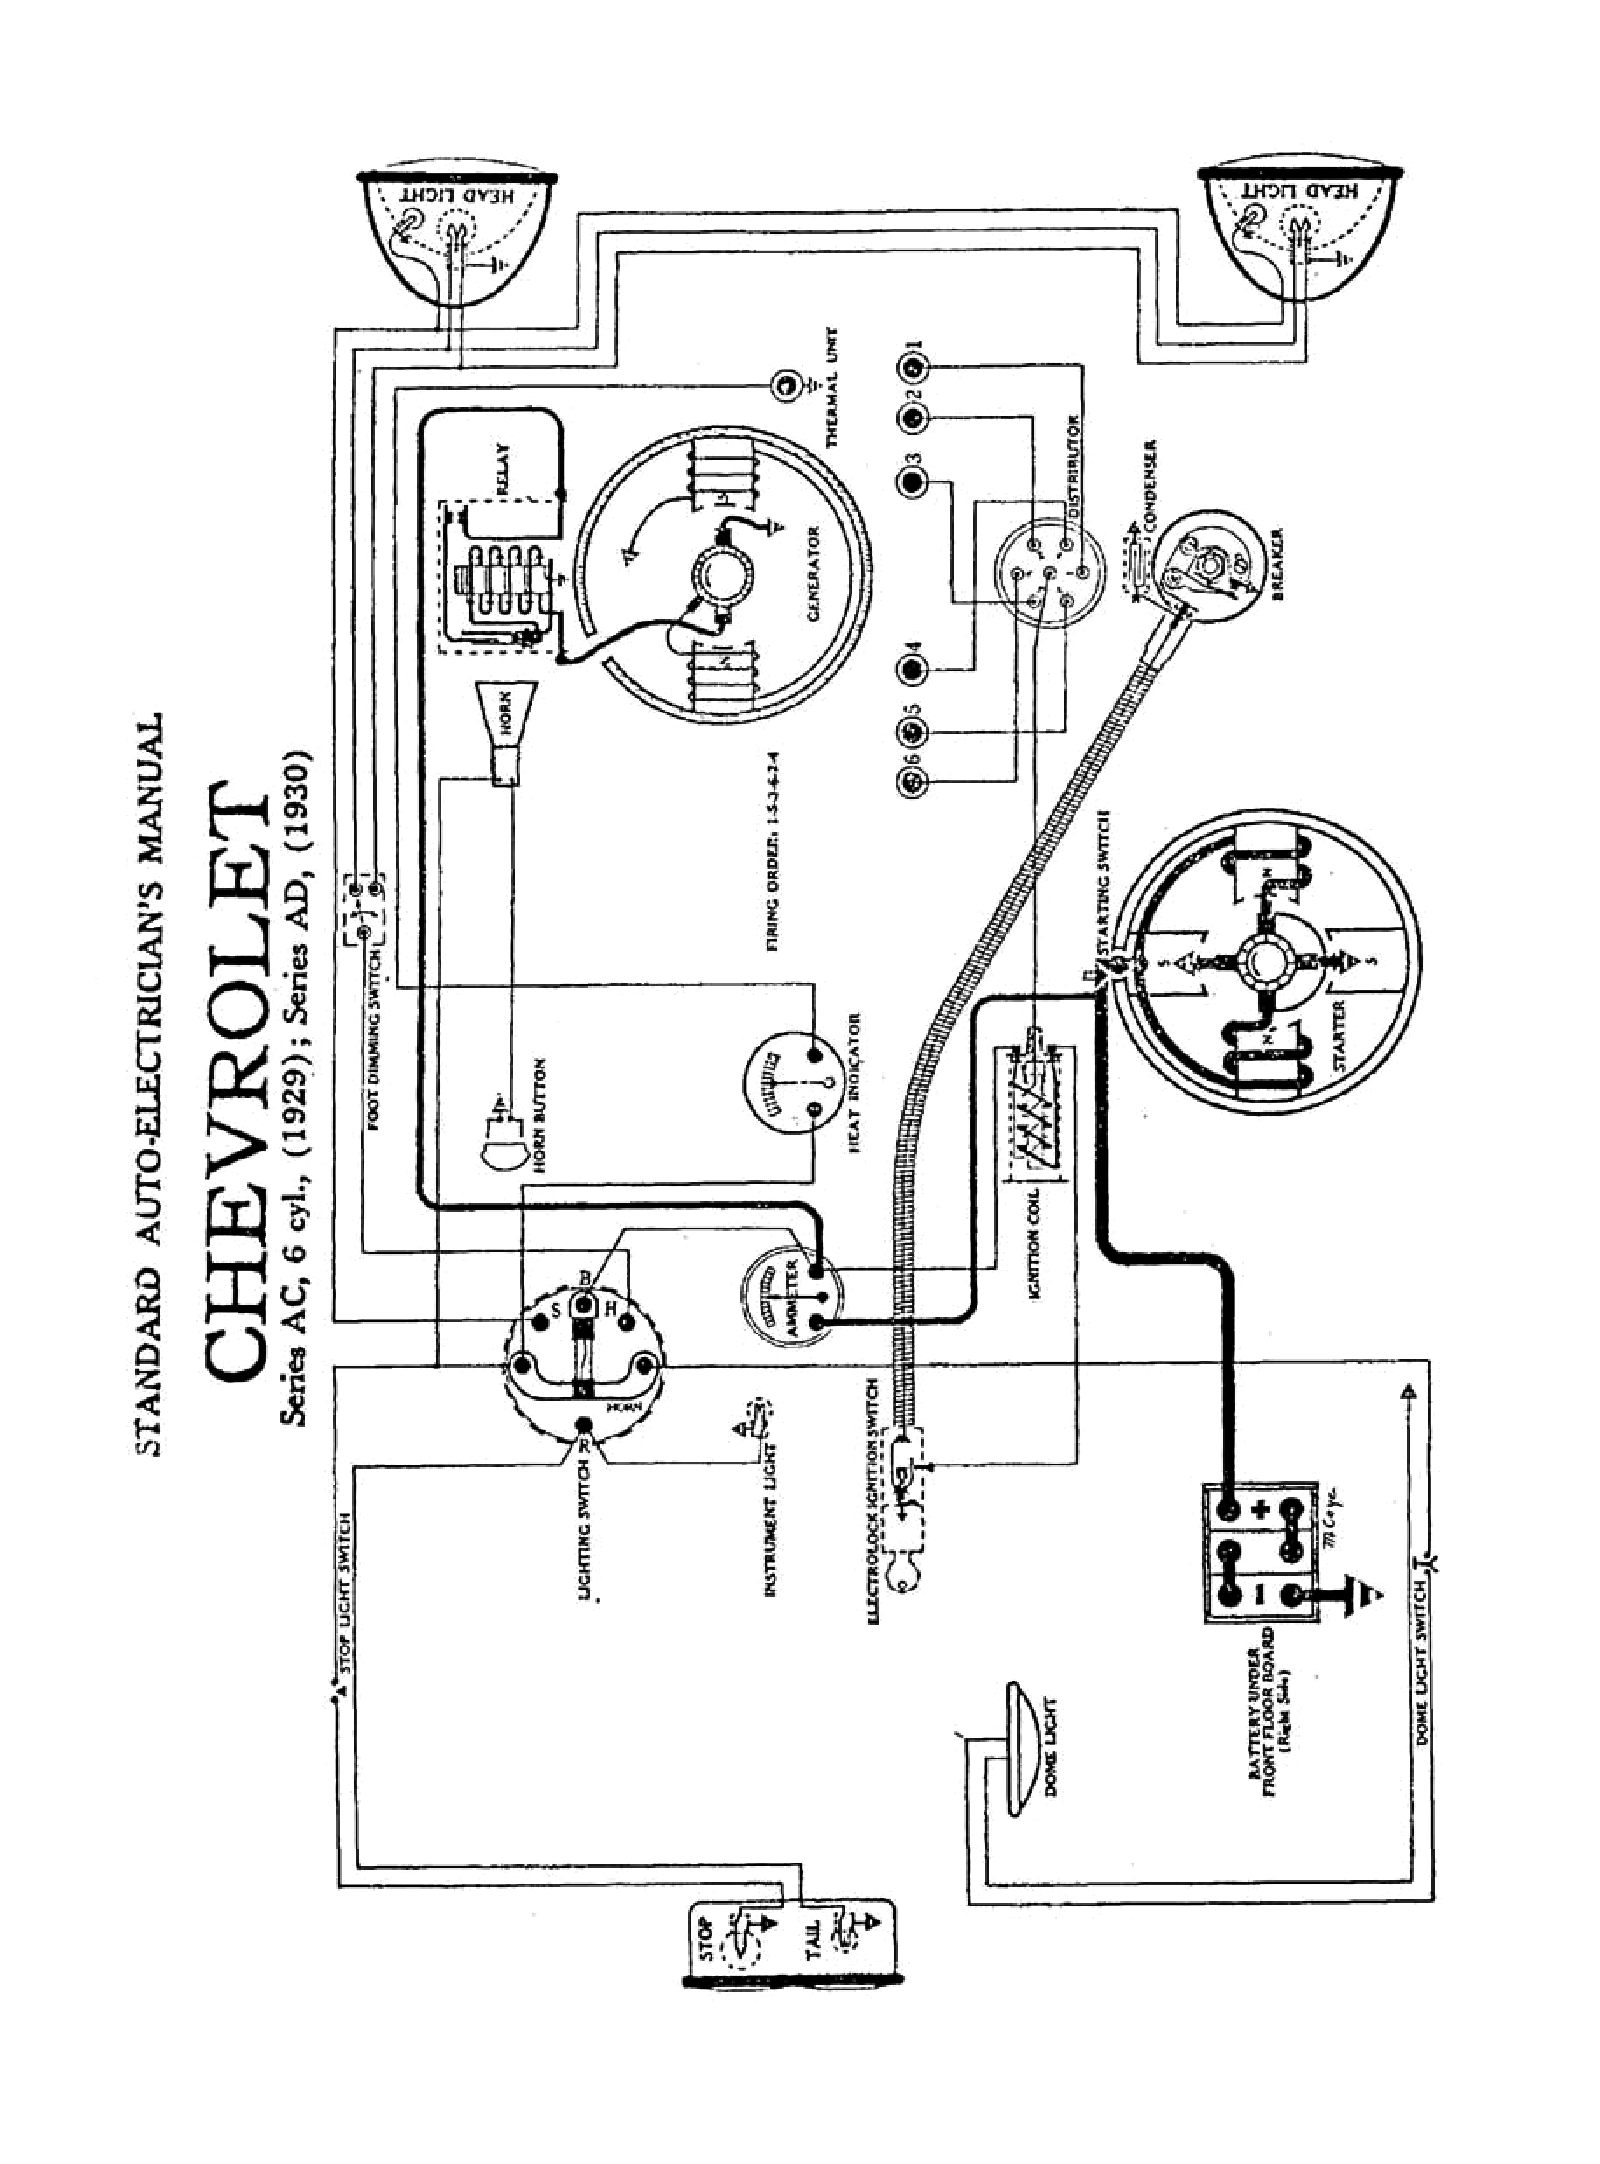 Ford 2810 Wiring Diagram